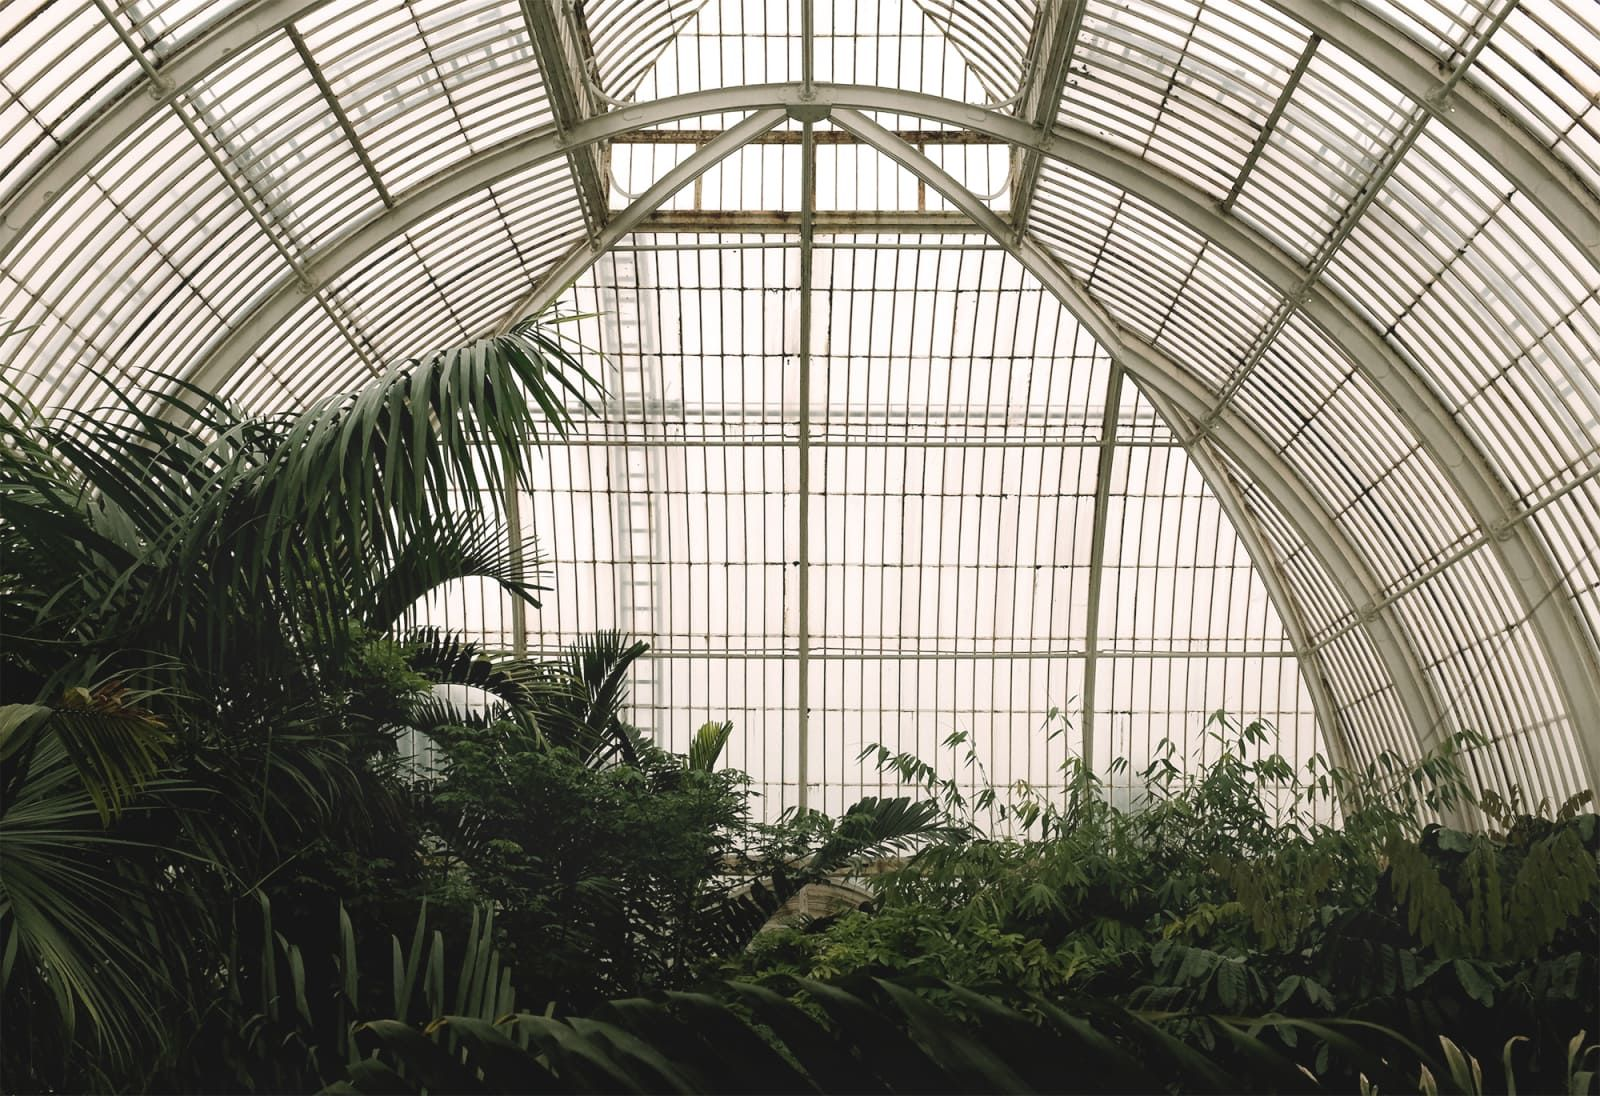 1cae8a552f667c9301fc1cf70a889d20 - Kew Gardens Greenhouse Iron And Glass